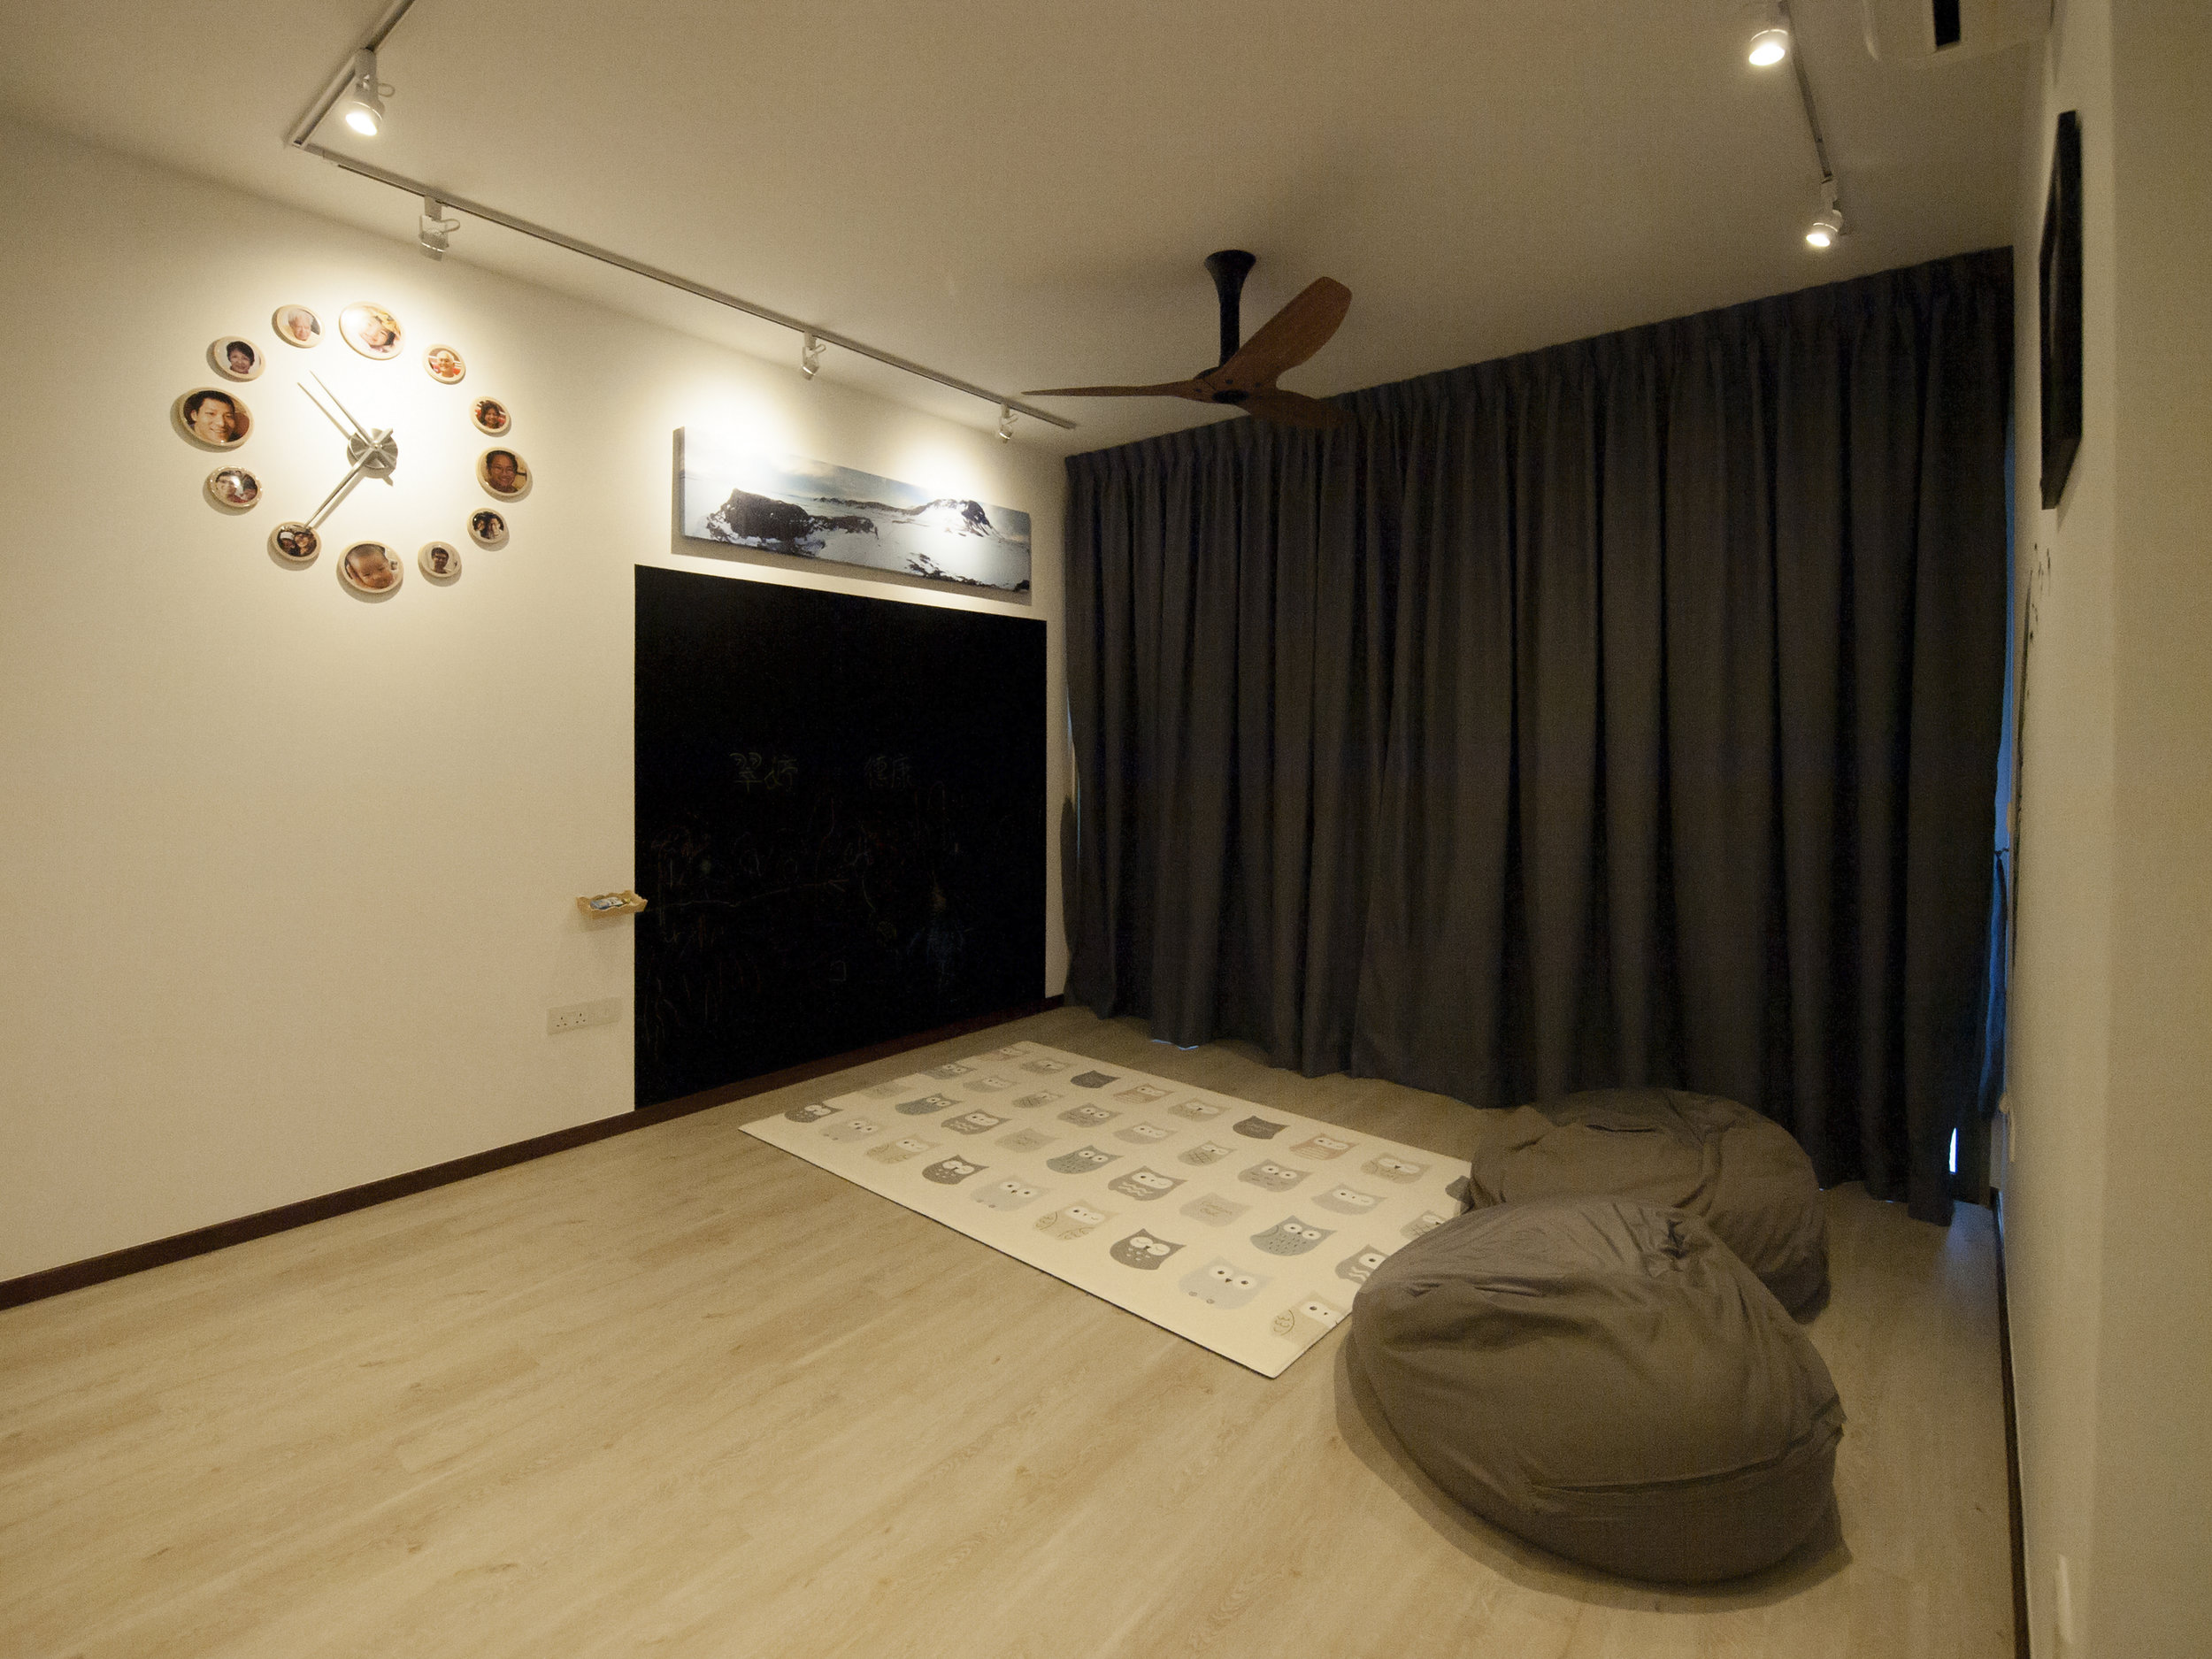 A chalkboard wall for the kids to draw and unleash their creativity.